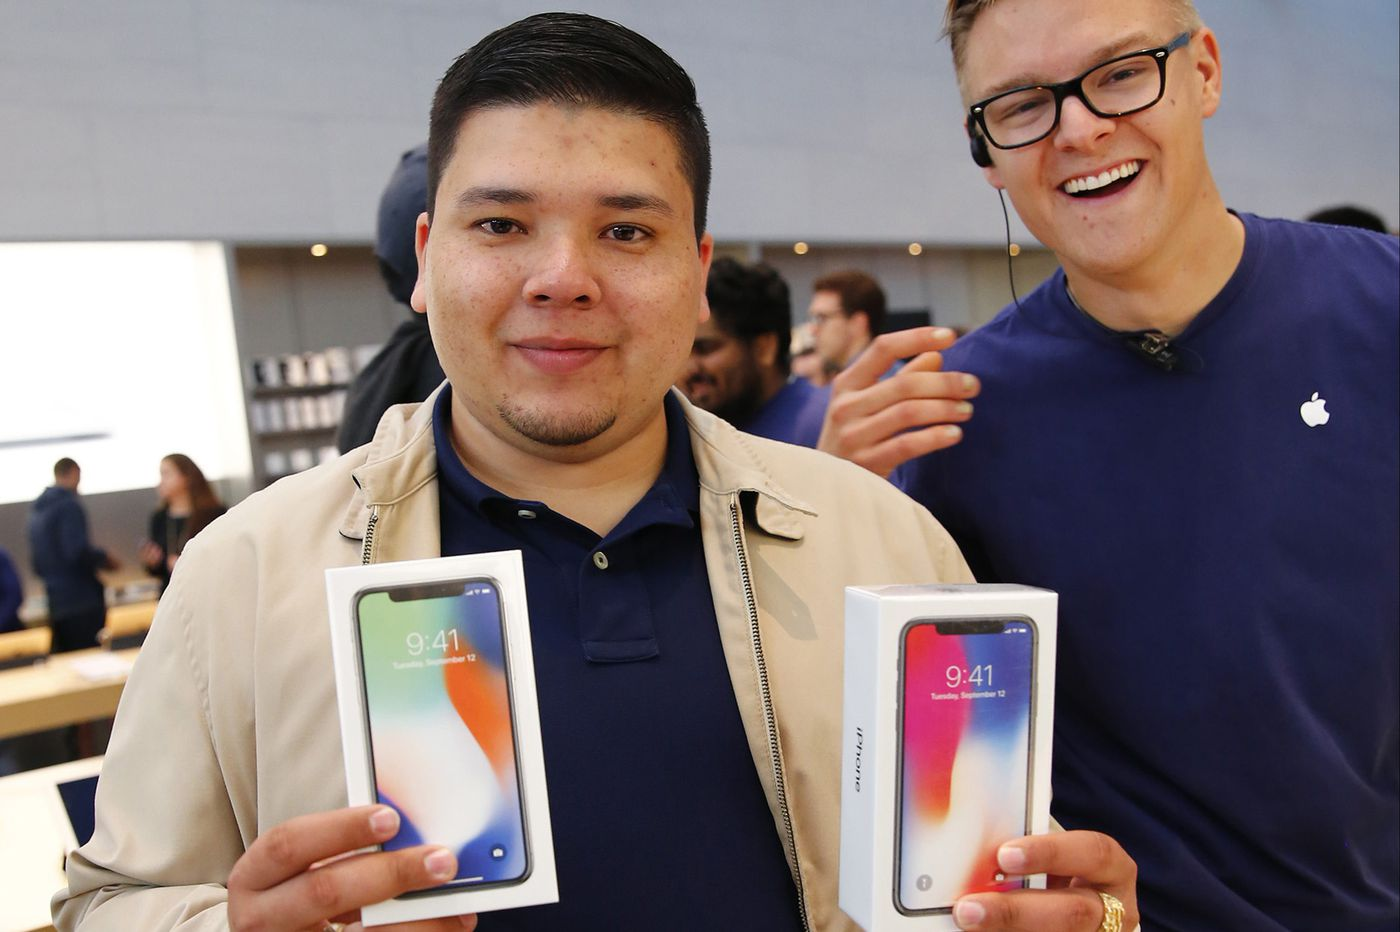 He hugged Tim Cook, bought the iPhone X, then was homeless by the roadside, asking for a job